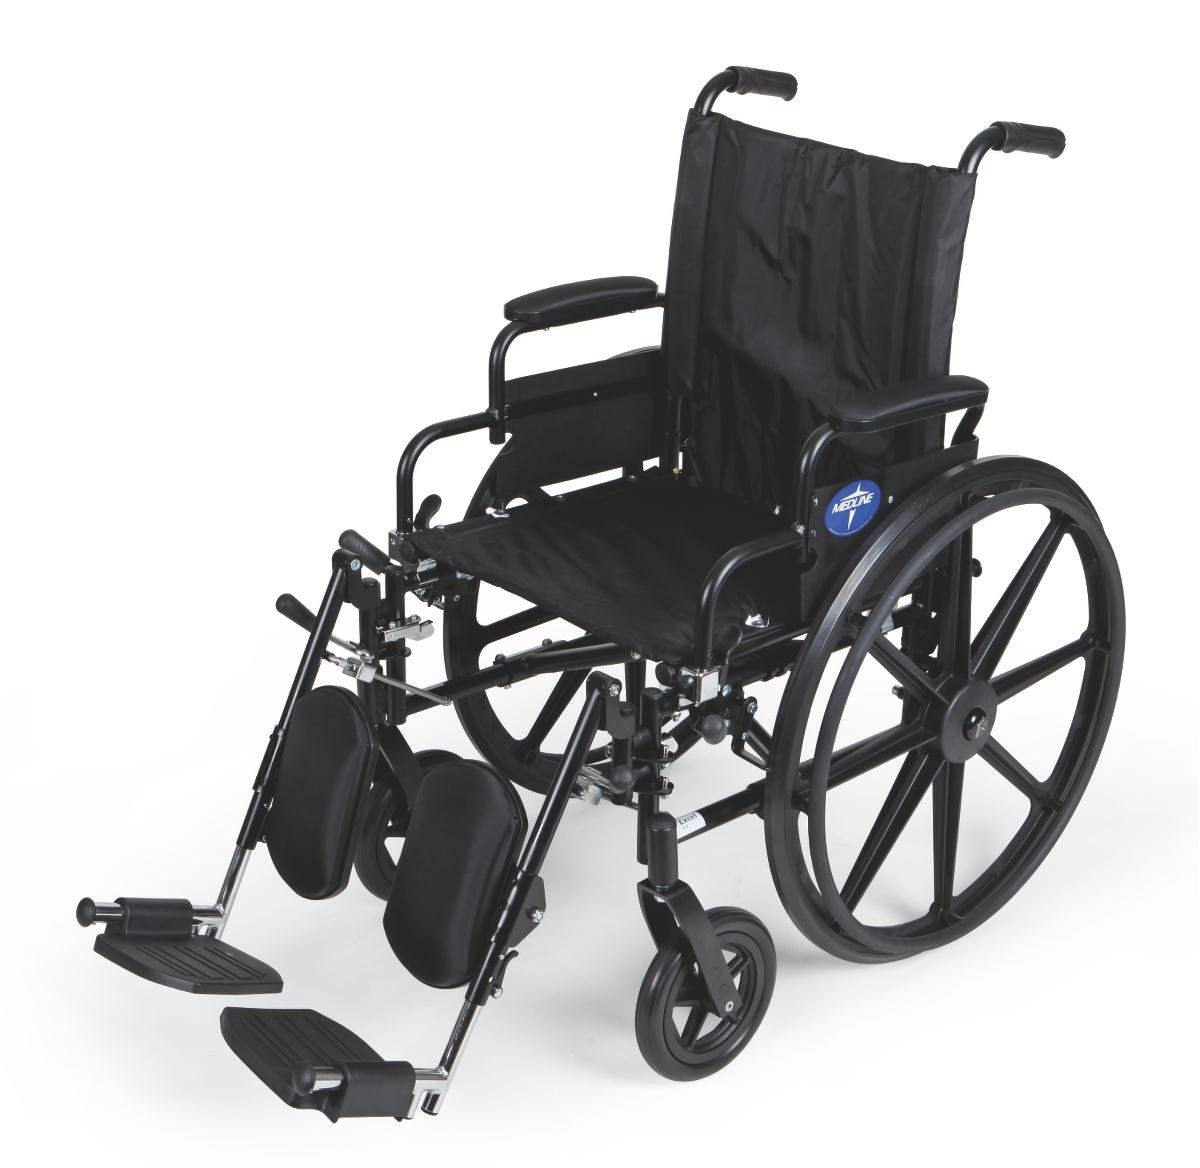 """Medline Premium Ultra-lightweight Wheelchair with Flip-Back Desk Arms and Elevating Leg Rests for Extra Comfort, Black, 18"""" x 16'' Seat"""